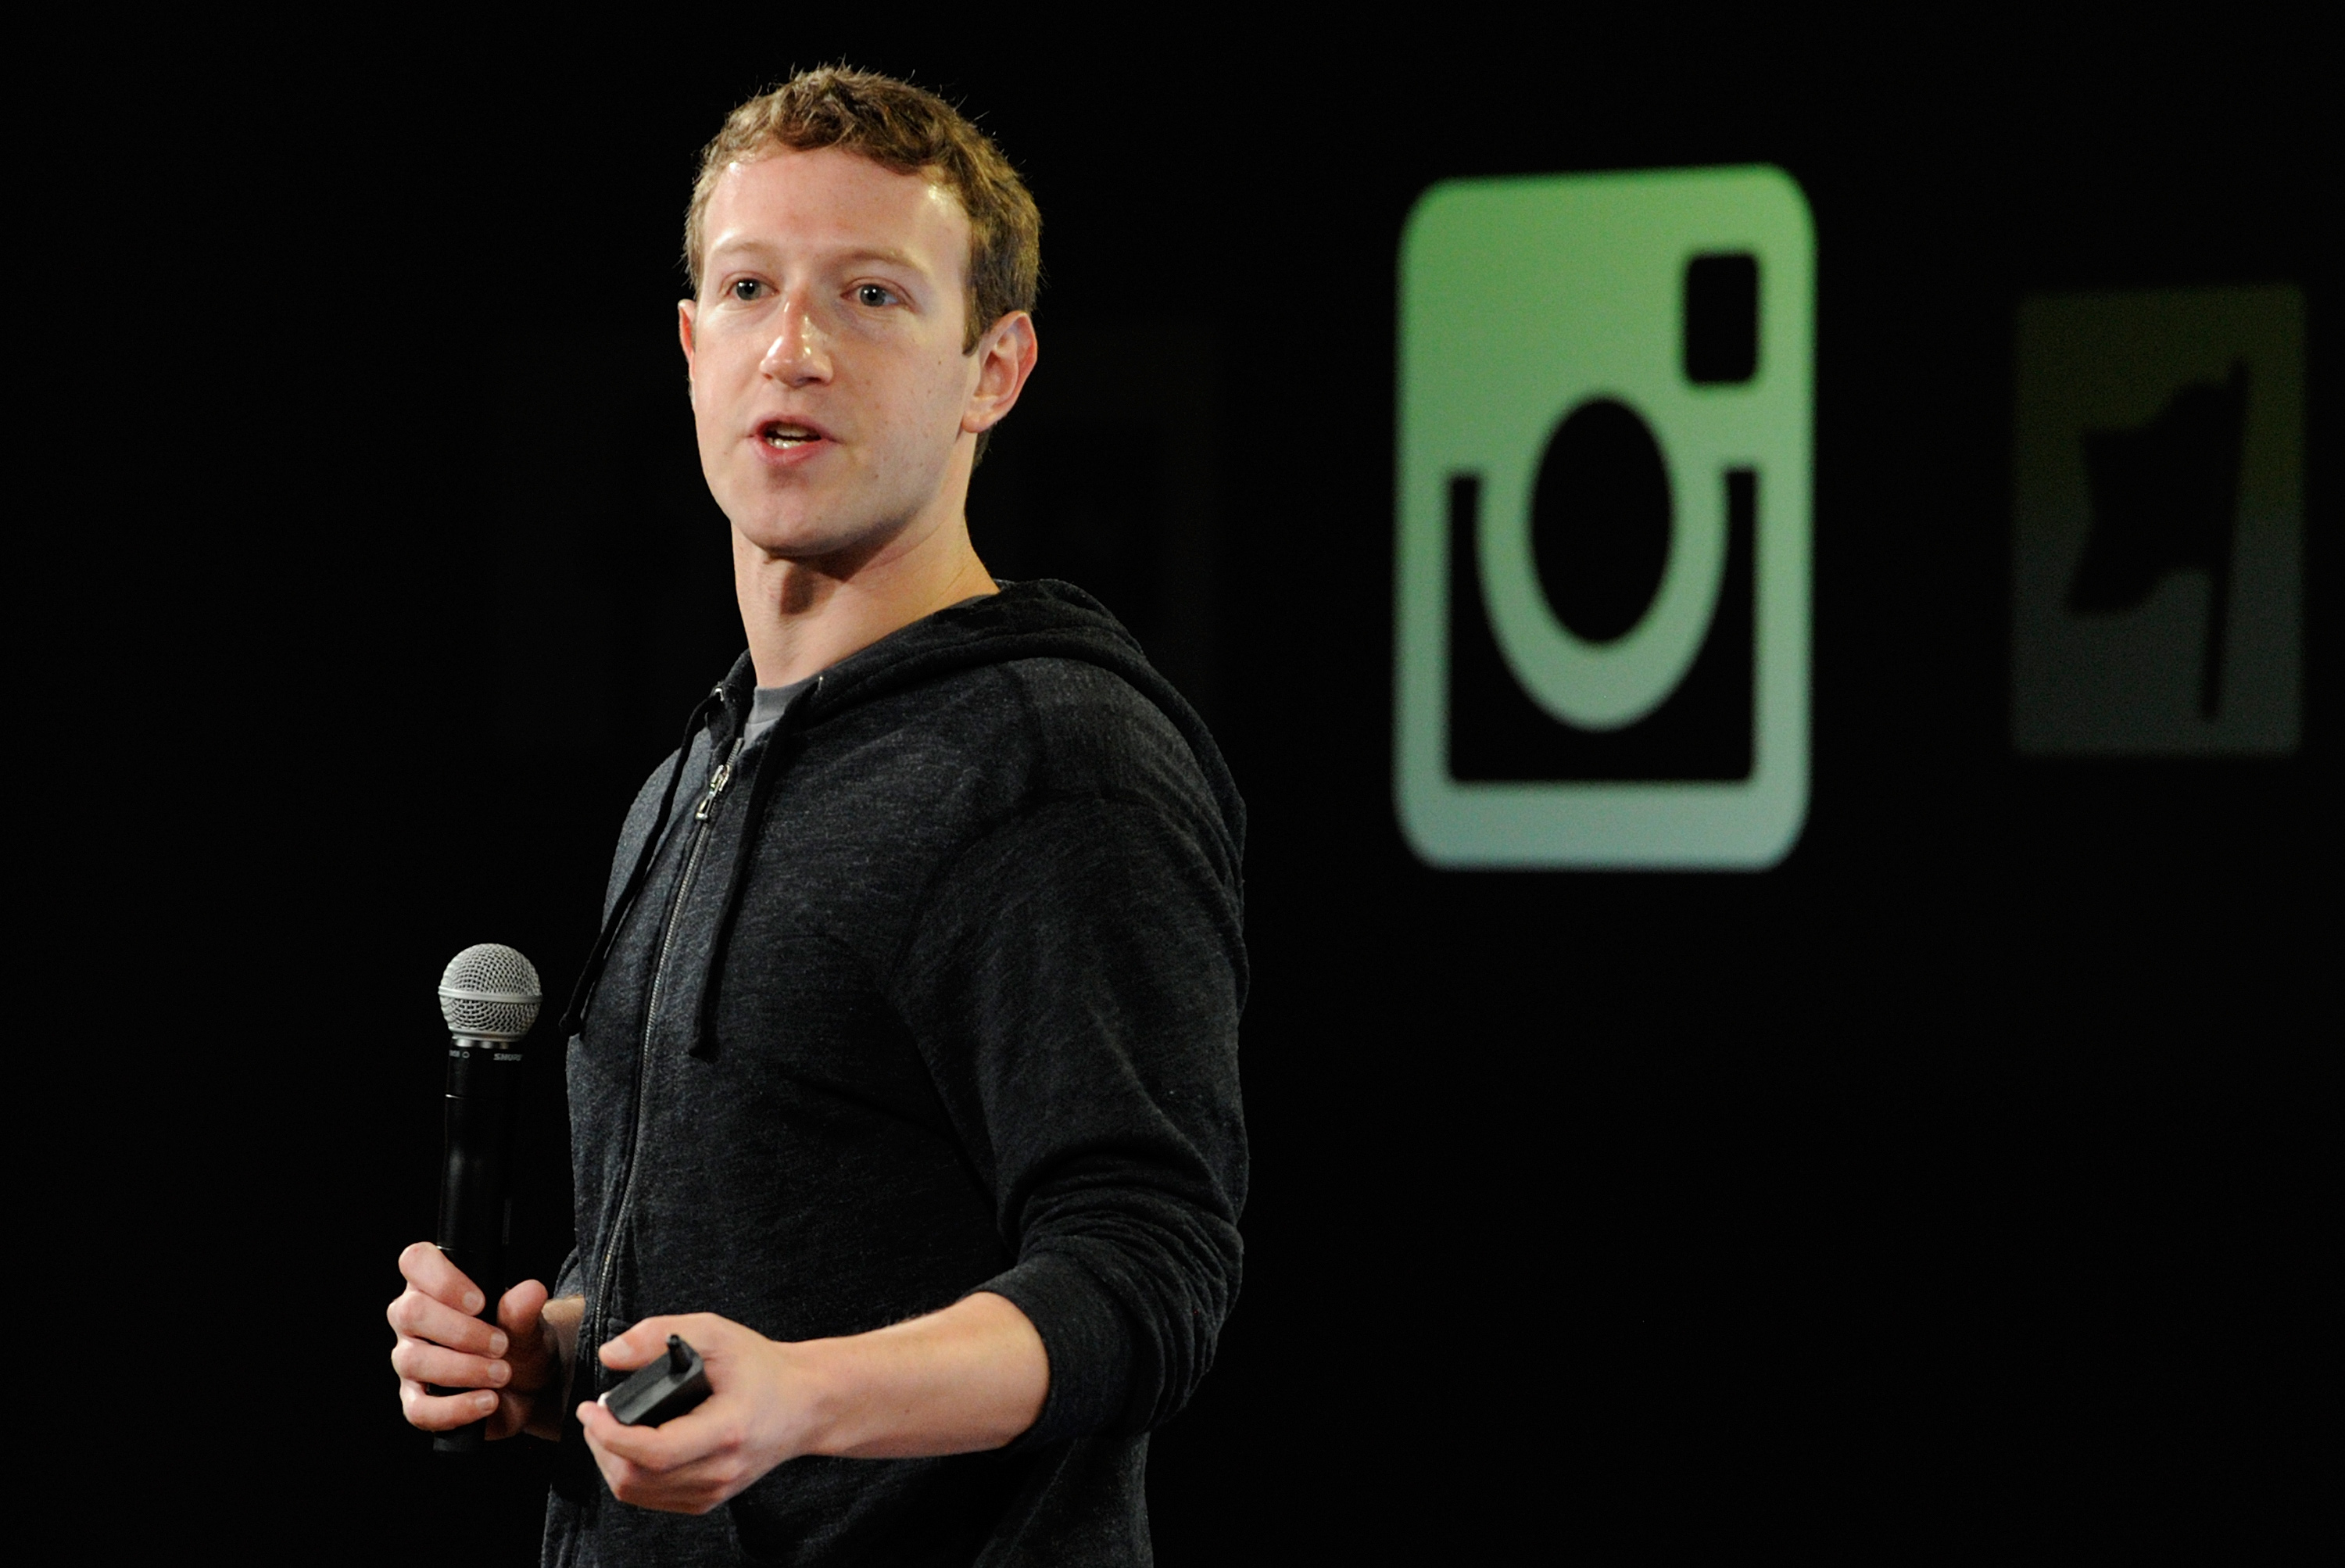 Facebook CEO Mark Zuckerberg in front of the Instagram logo in 2013. The social network bought Instagram, in which Thrive Capital invested, for $1 billion in 2012.